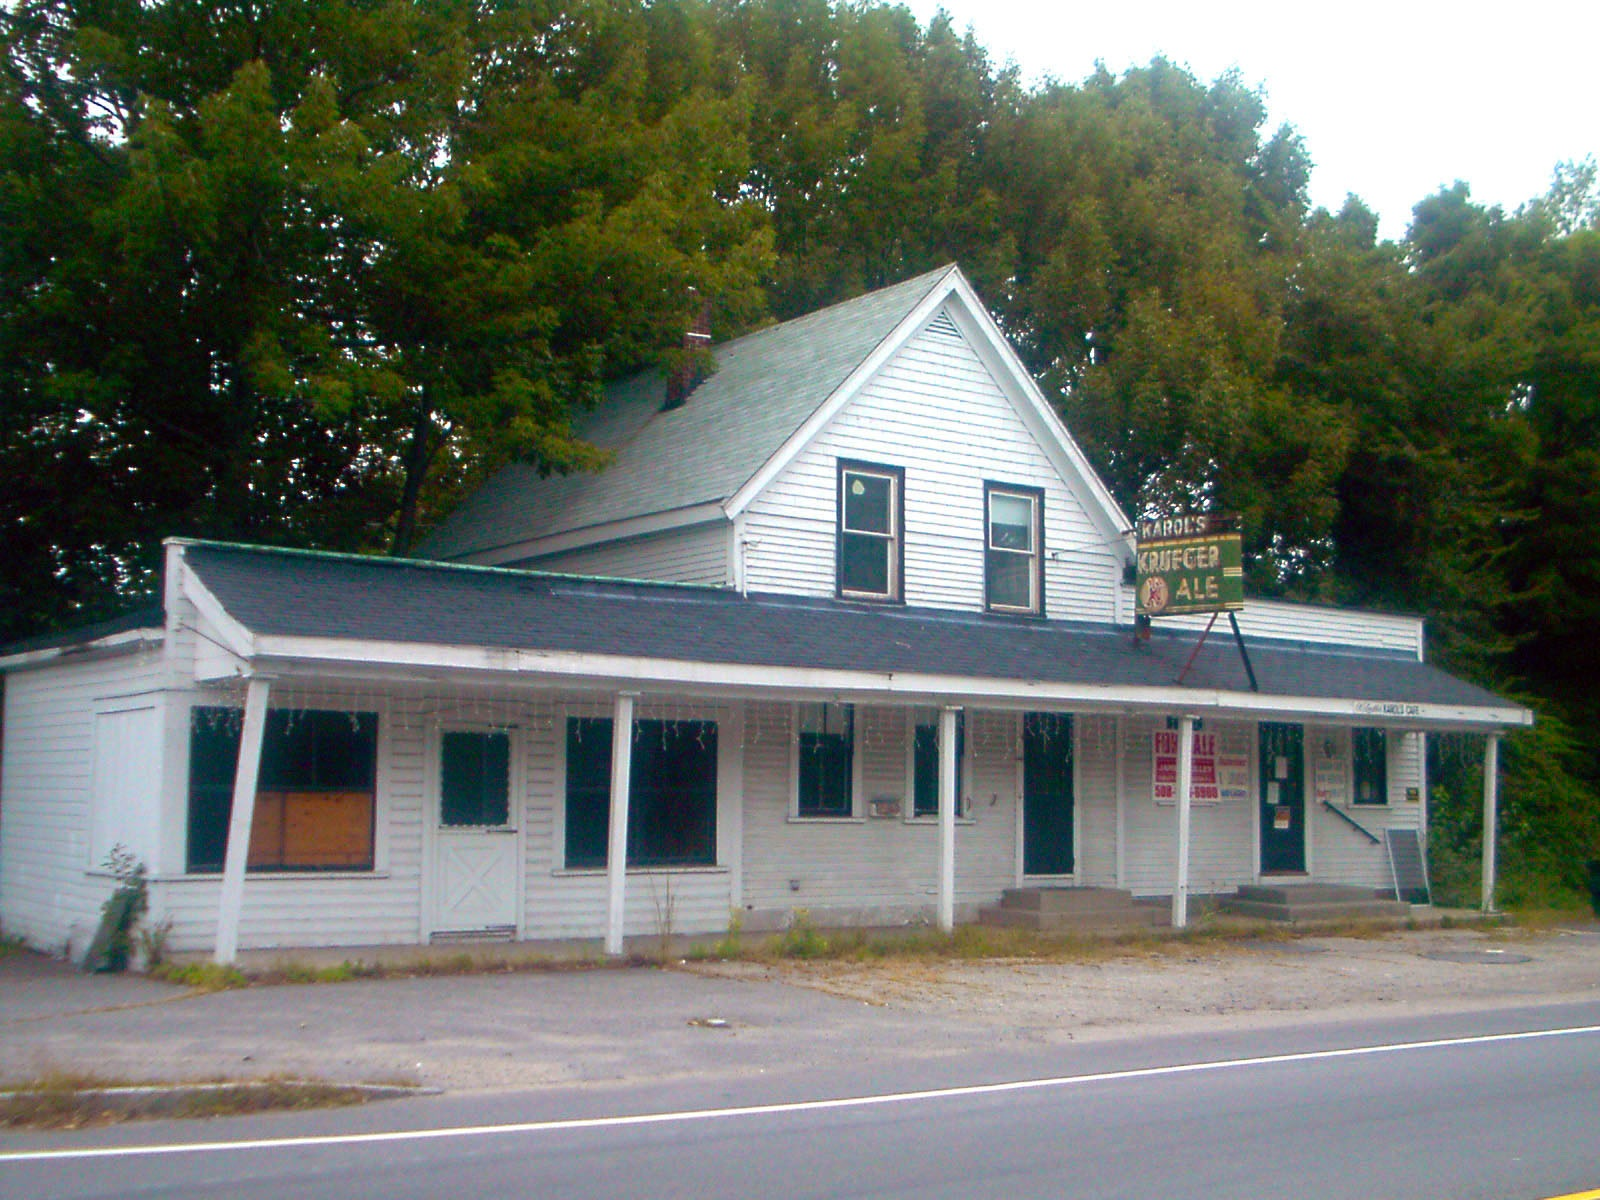 The former Karol's Cafe with the famous Krueger's Ale sign in Walpole, Mass.